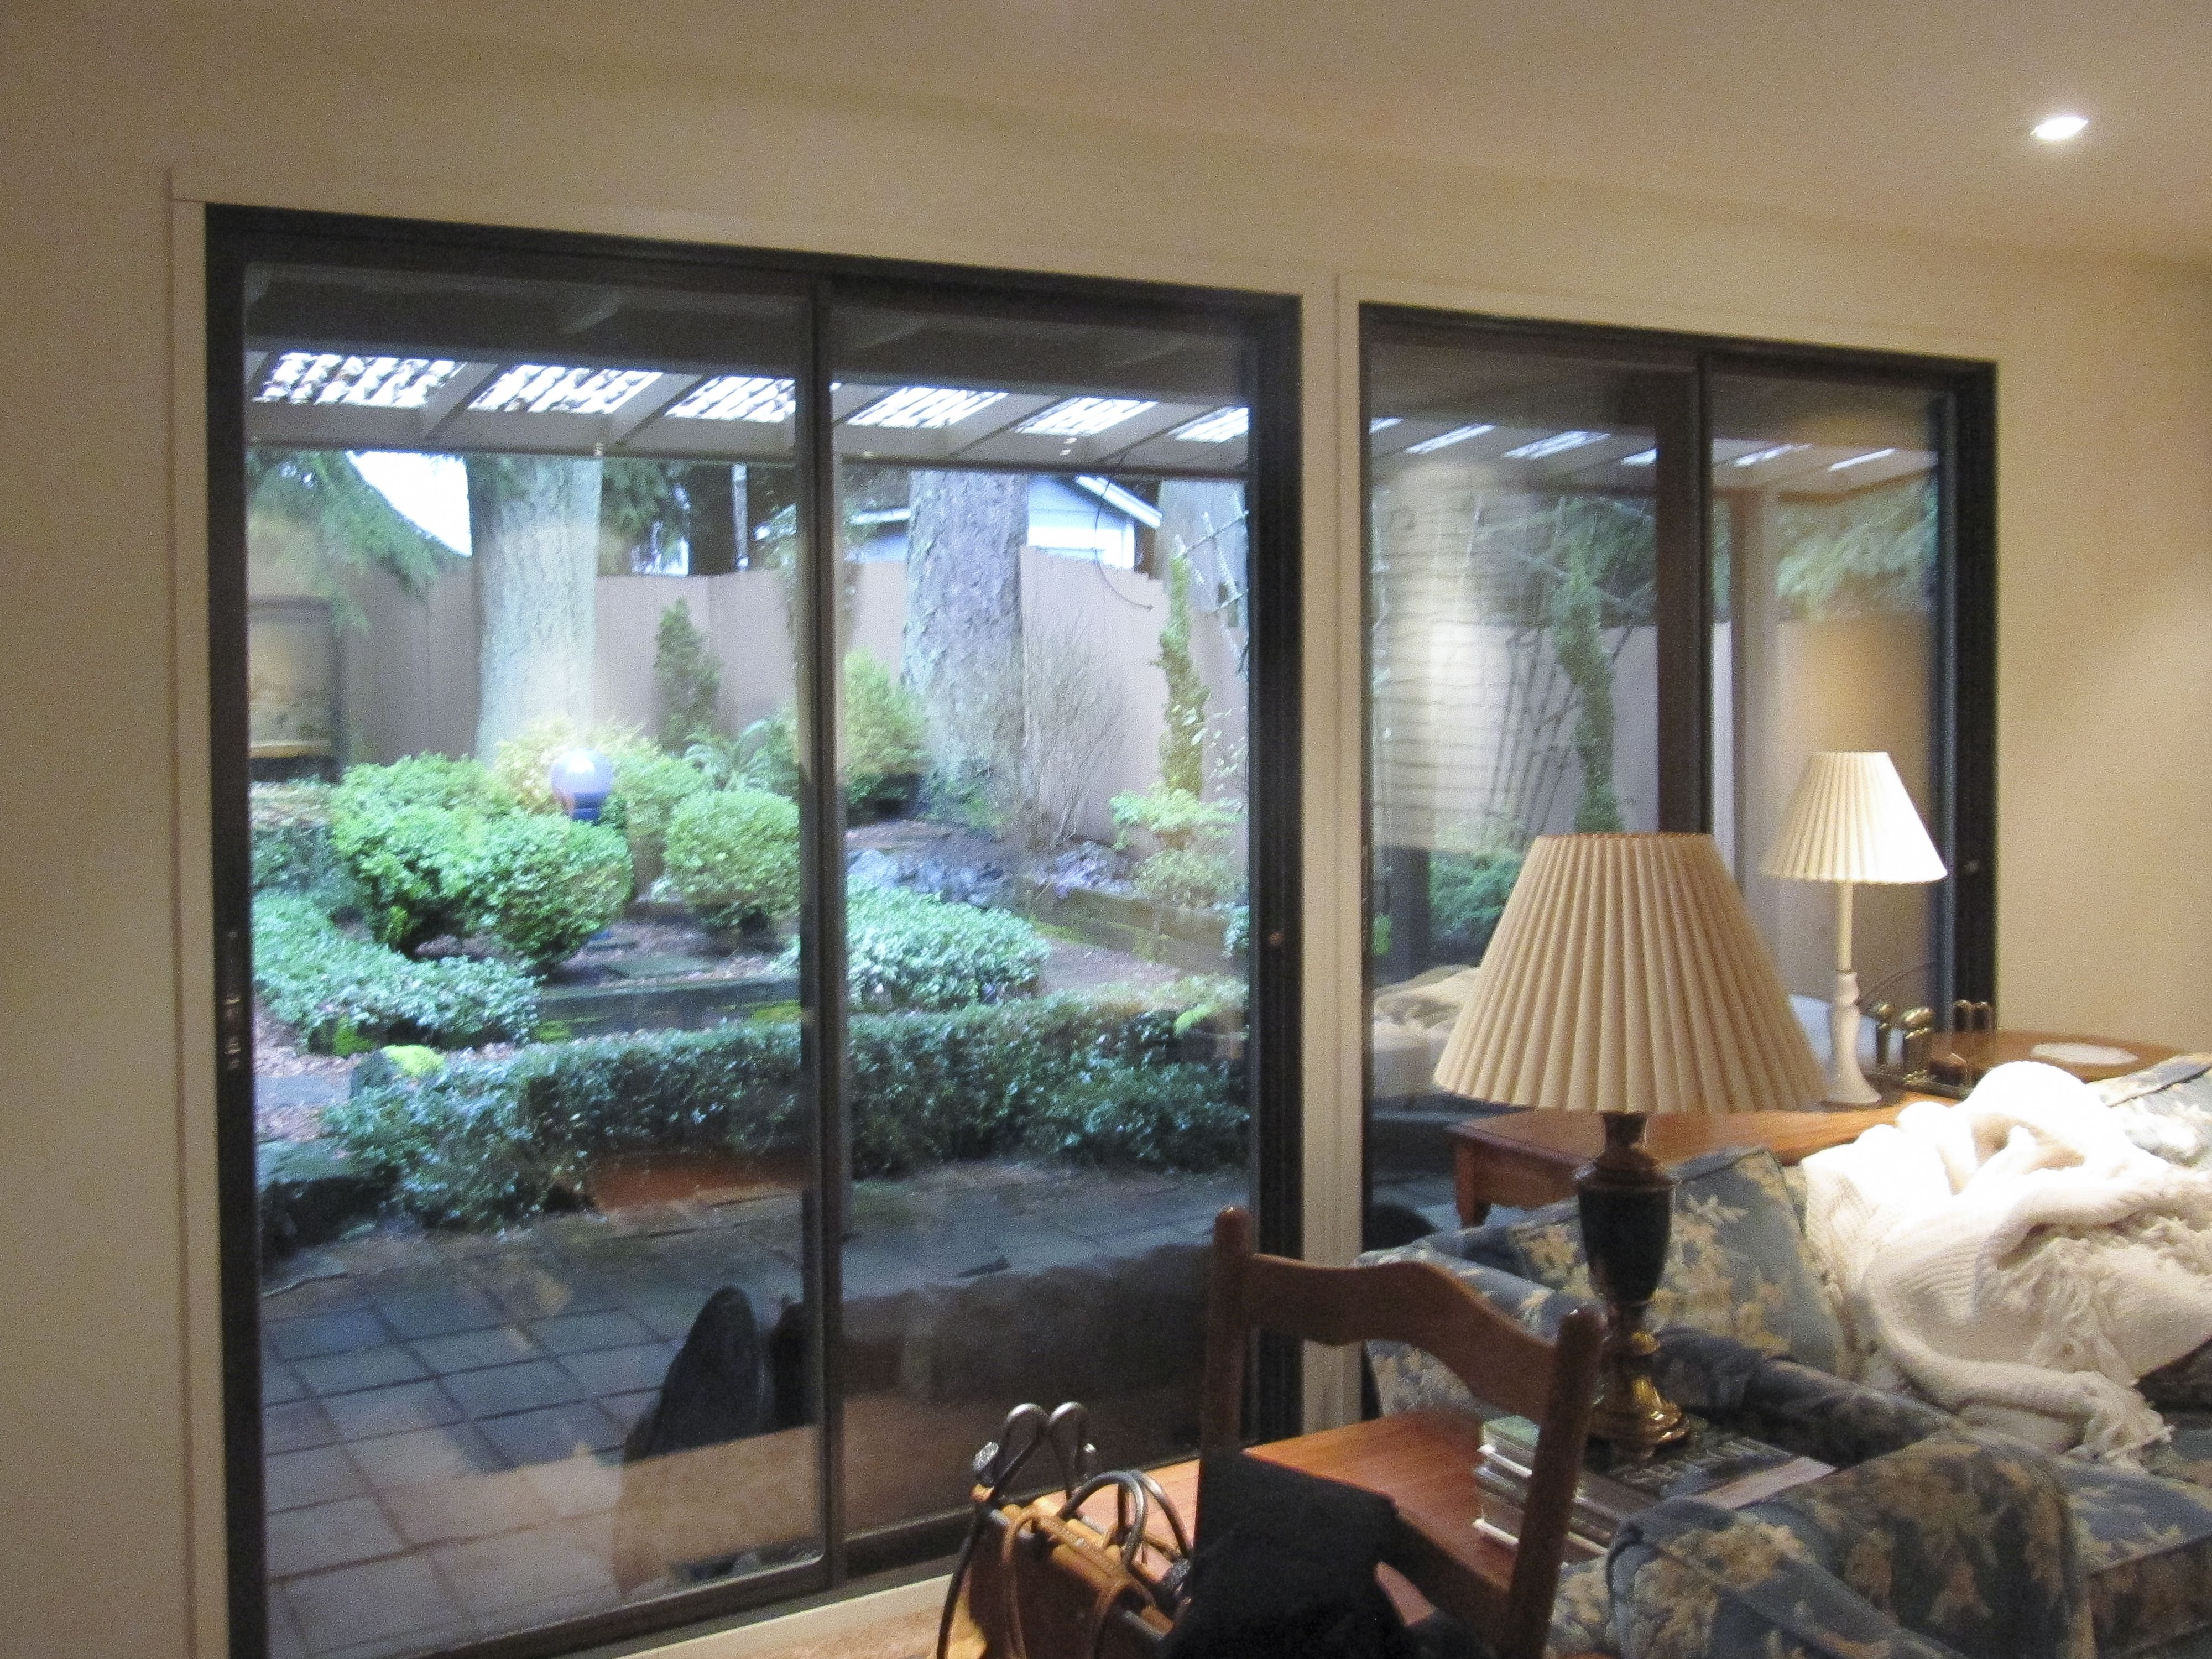 Sliding glass doors before simple family room face lift with new sliding glass doors before simple family room face lift with new lighting paint vg fir trim milgard tuscany sliding glass doors and a dramatic field planetlyrics Choice Image